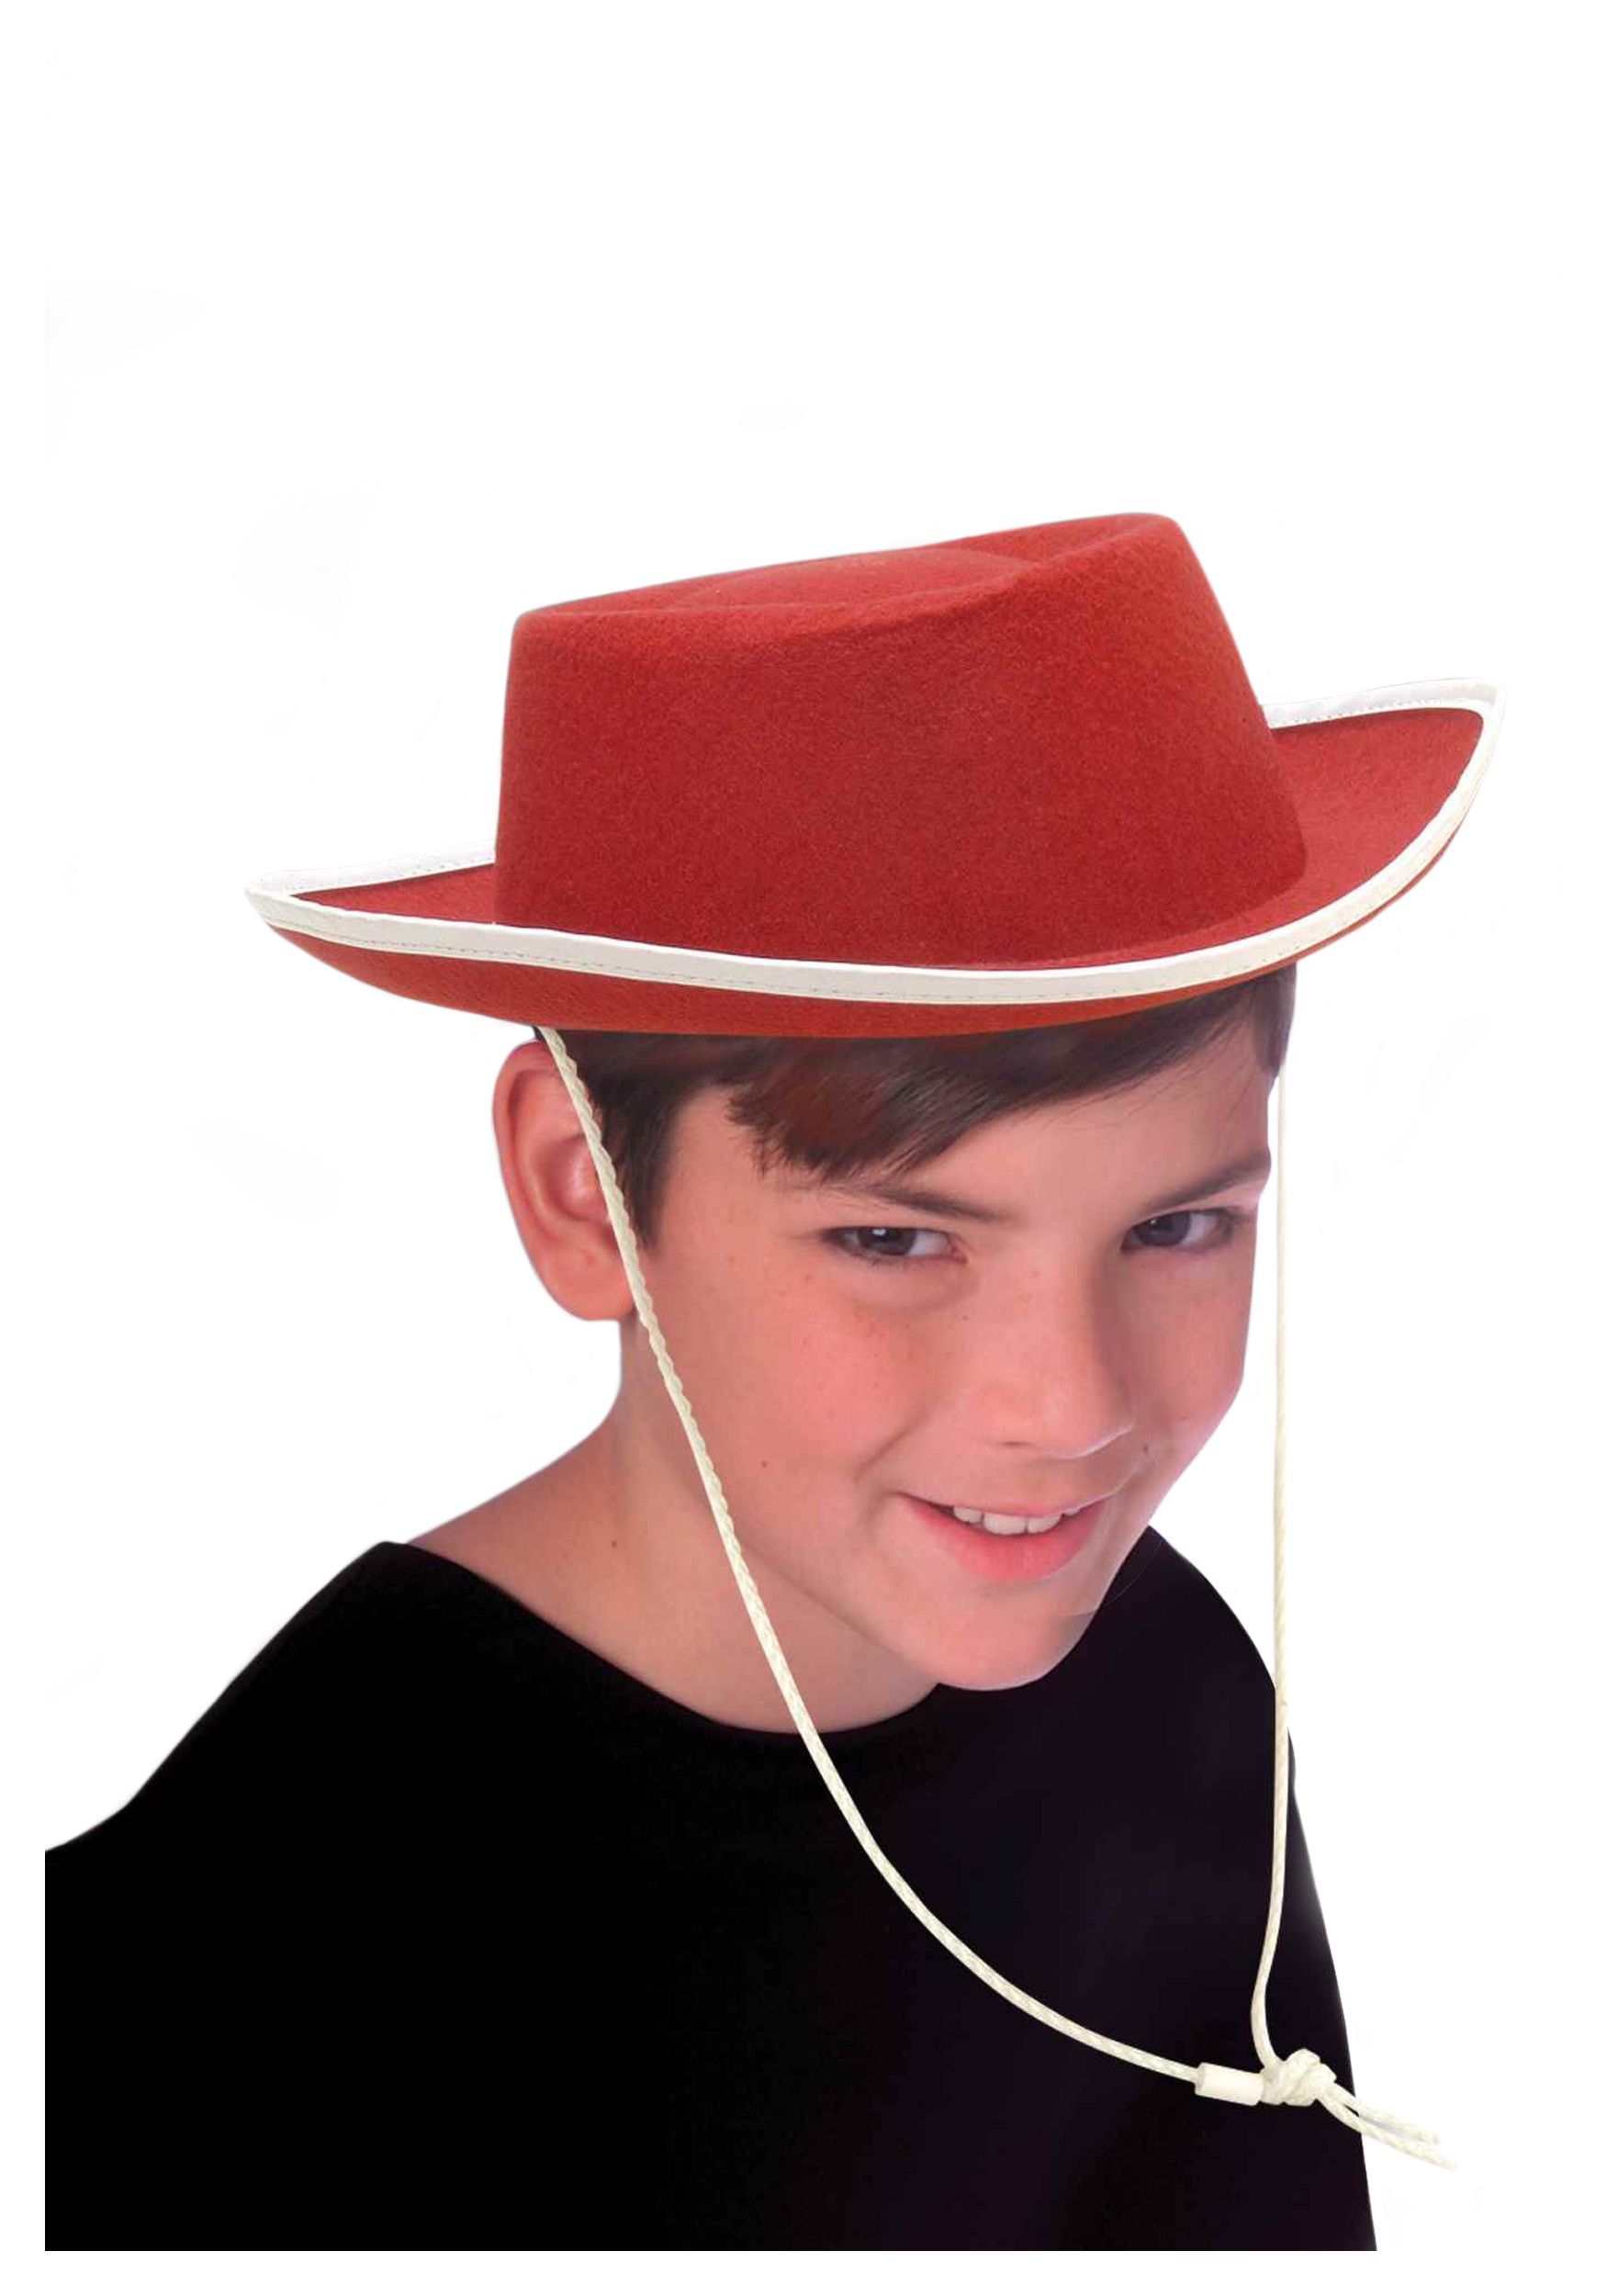 Kids Red Cowboy Hat  sc 1 st  Halloween Costumes & Kids Red Cowboy Hat - Halloween Costumes